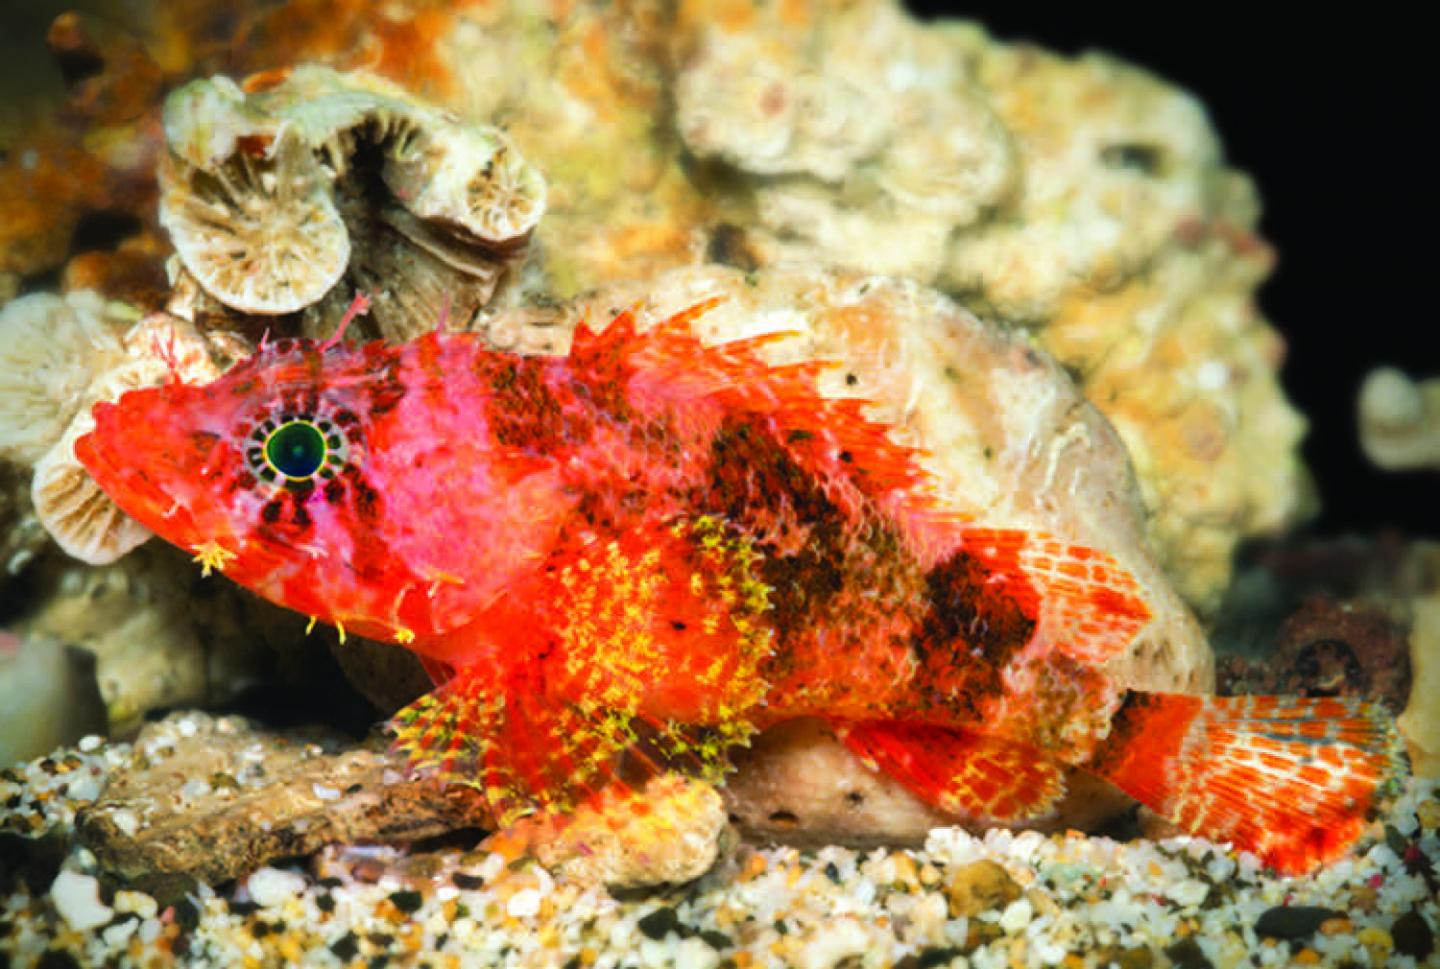 A Beautiful New Dwarf Scorpionfish from Caribbean Mesophotic Reefs ...